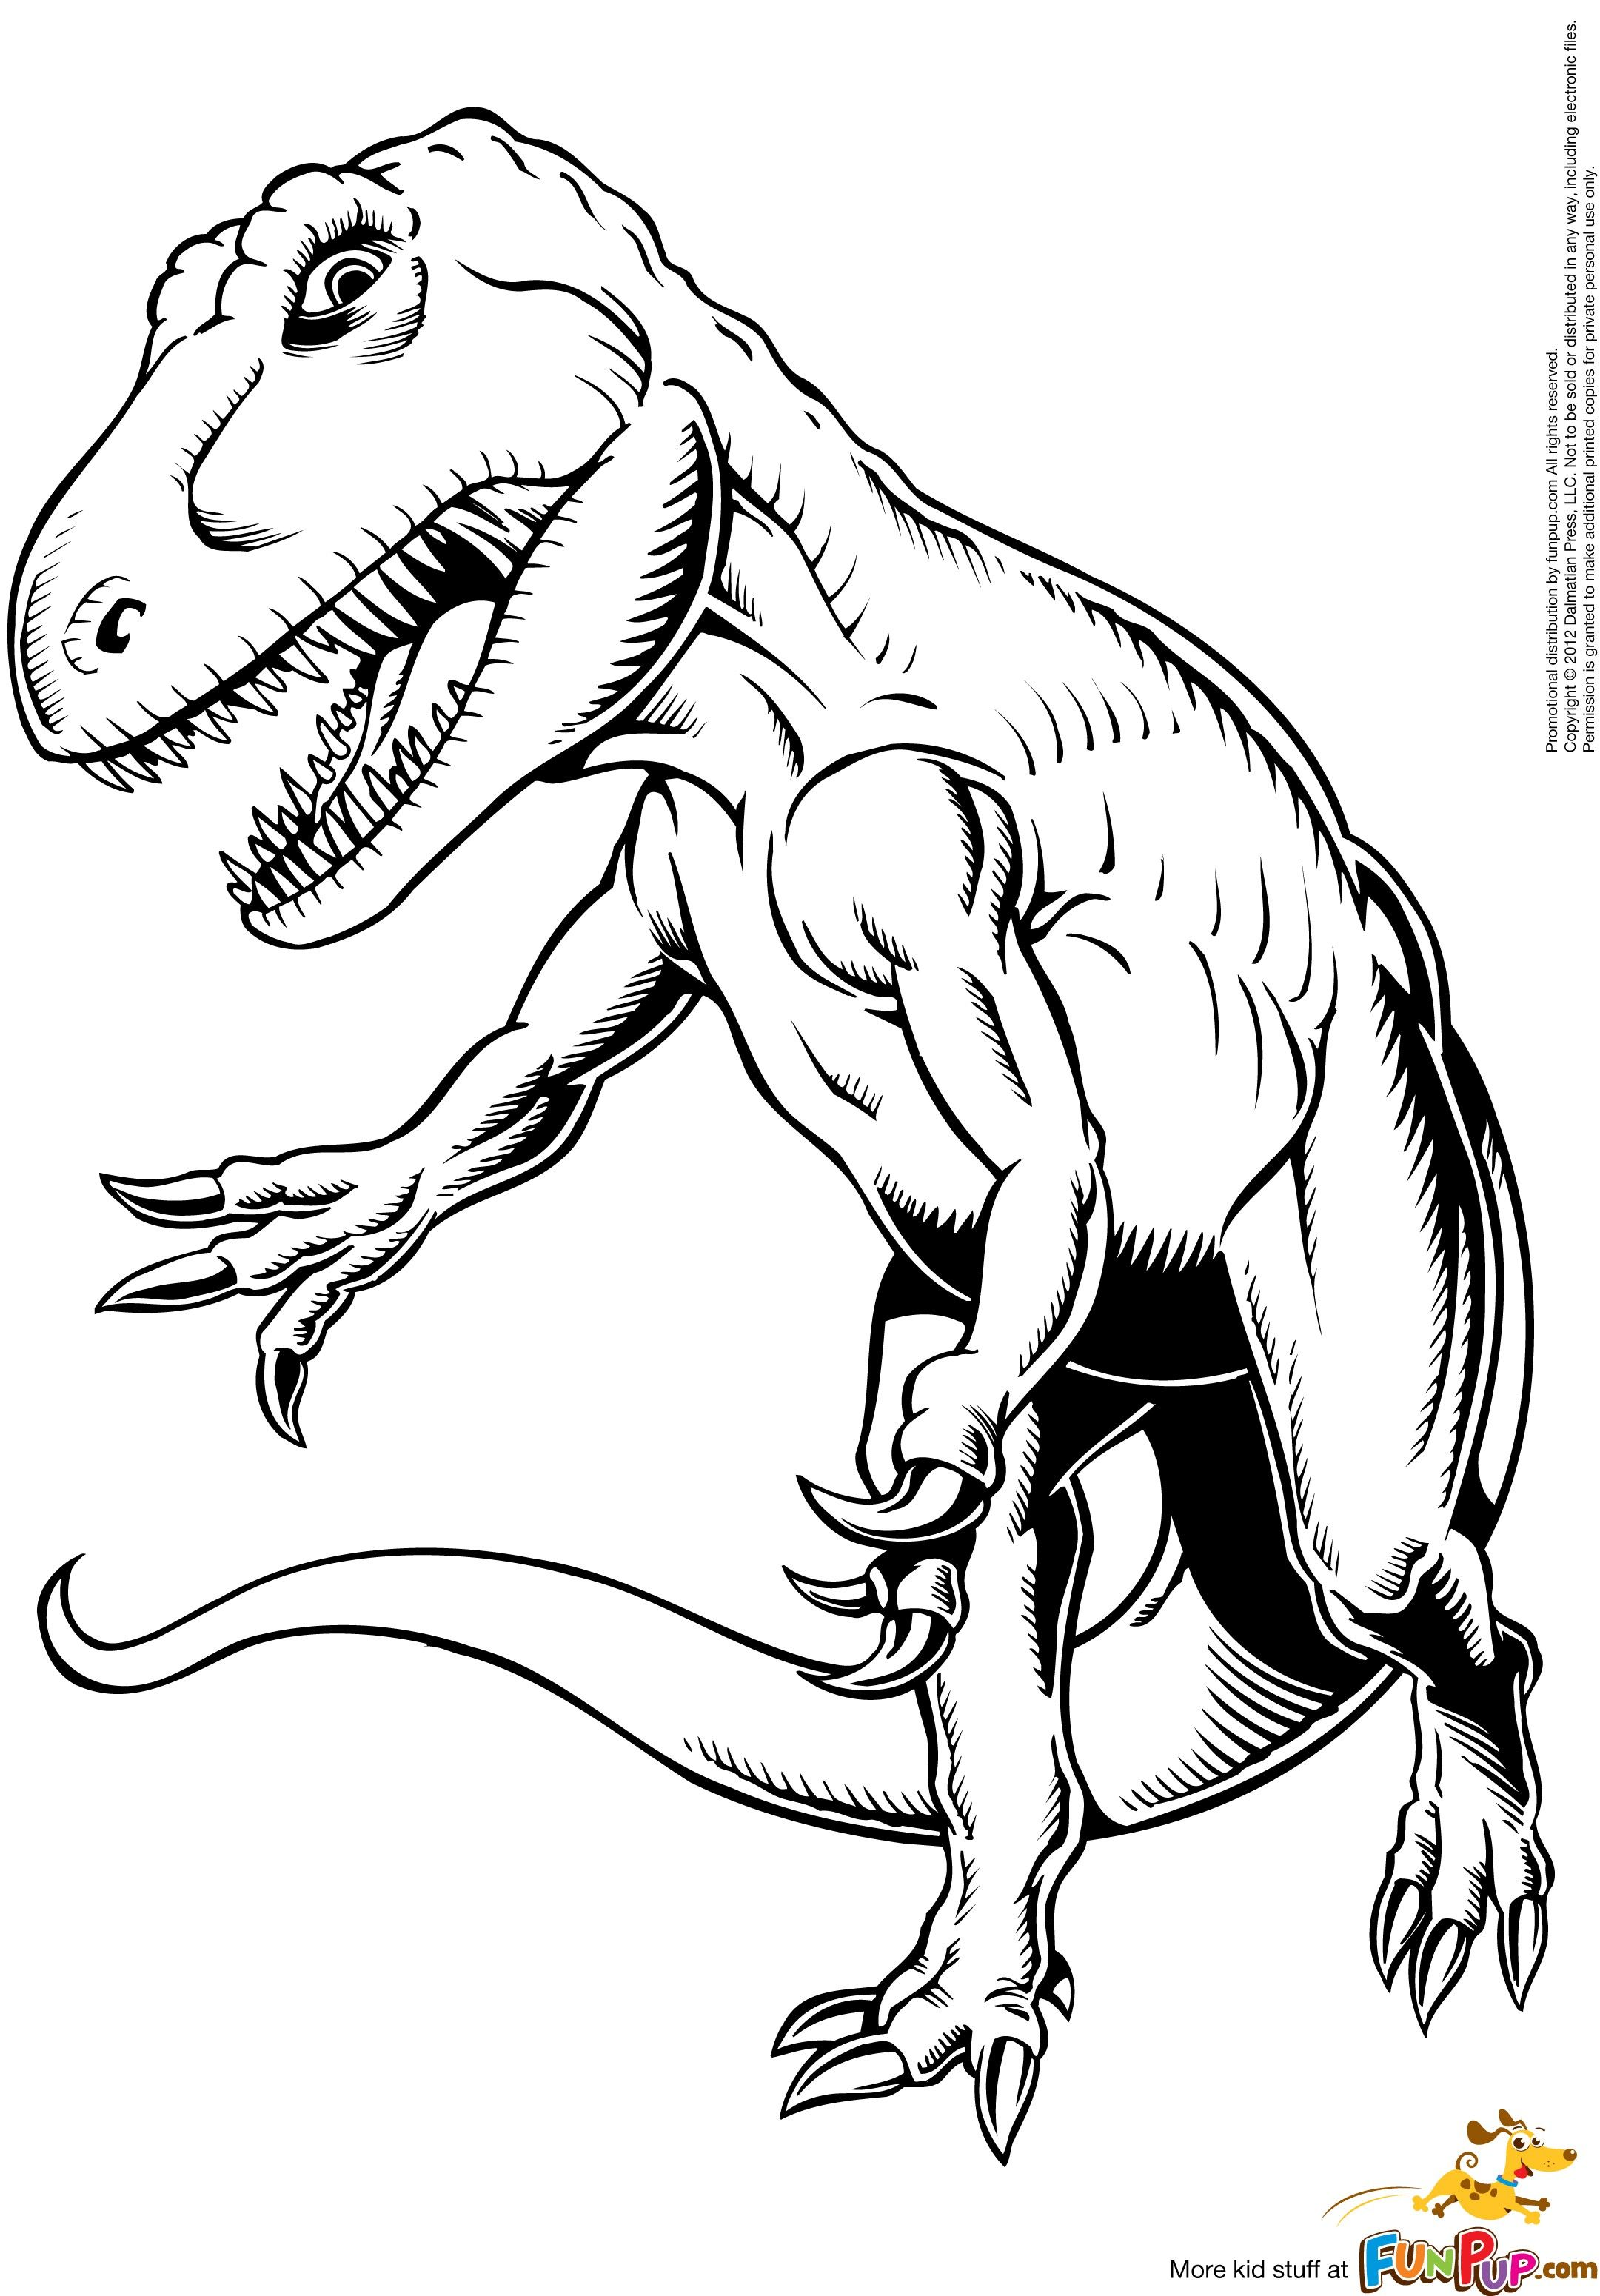 kids t rex coloring page trex coloring pages best coloring pages for kids coloring page rex t kids